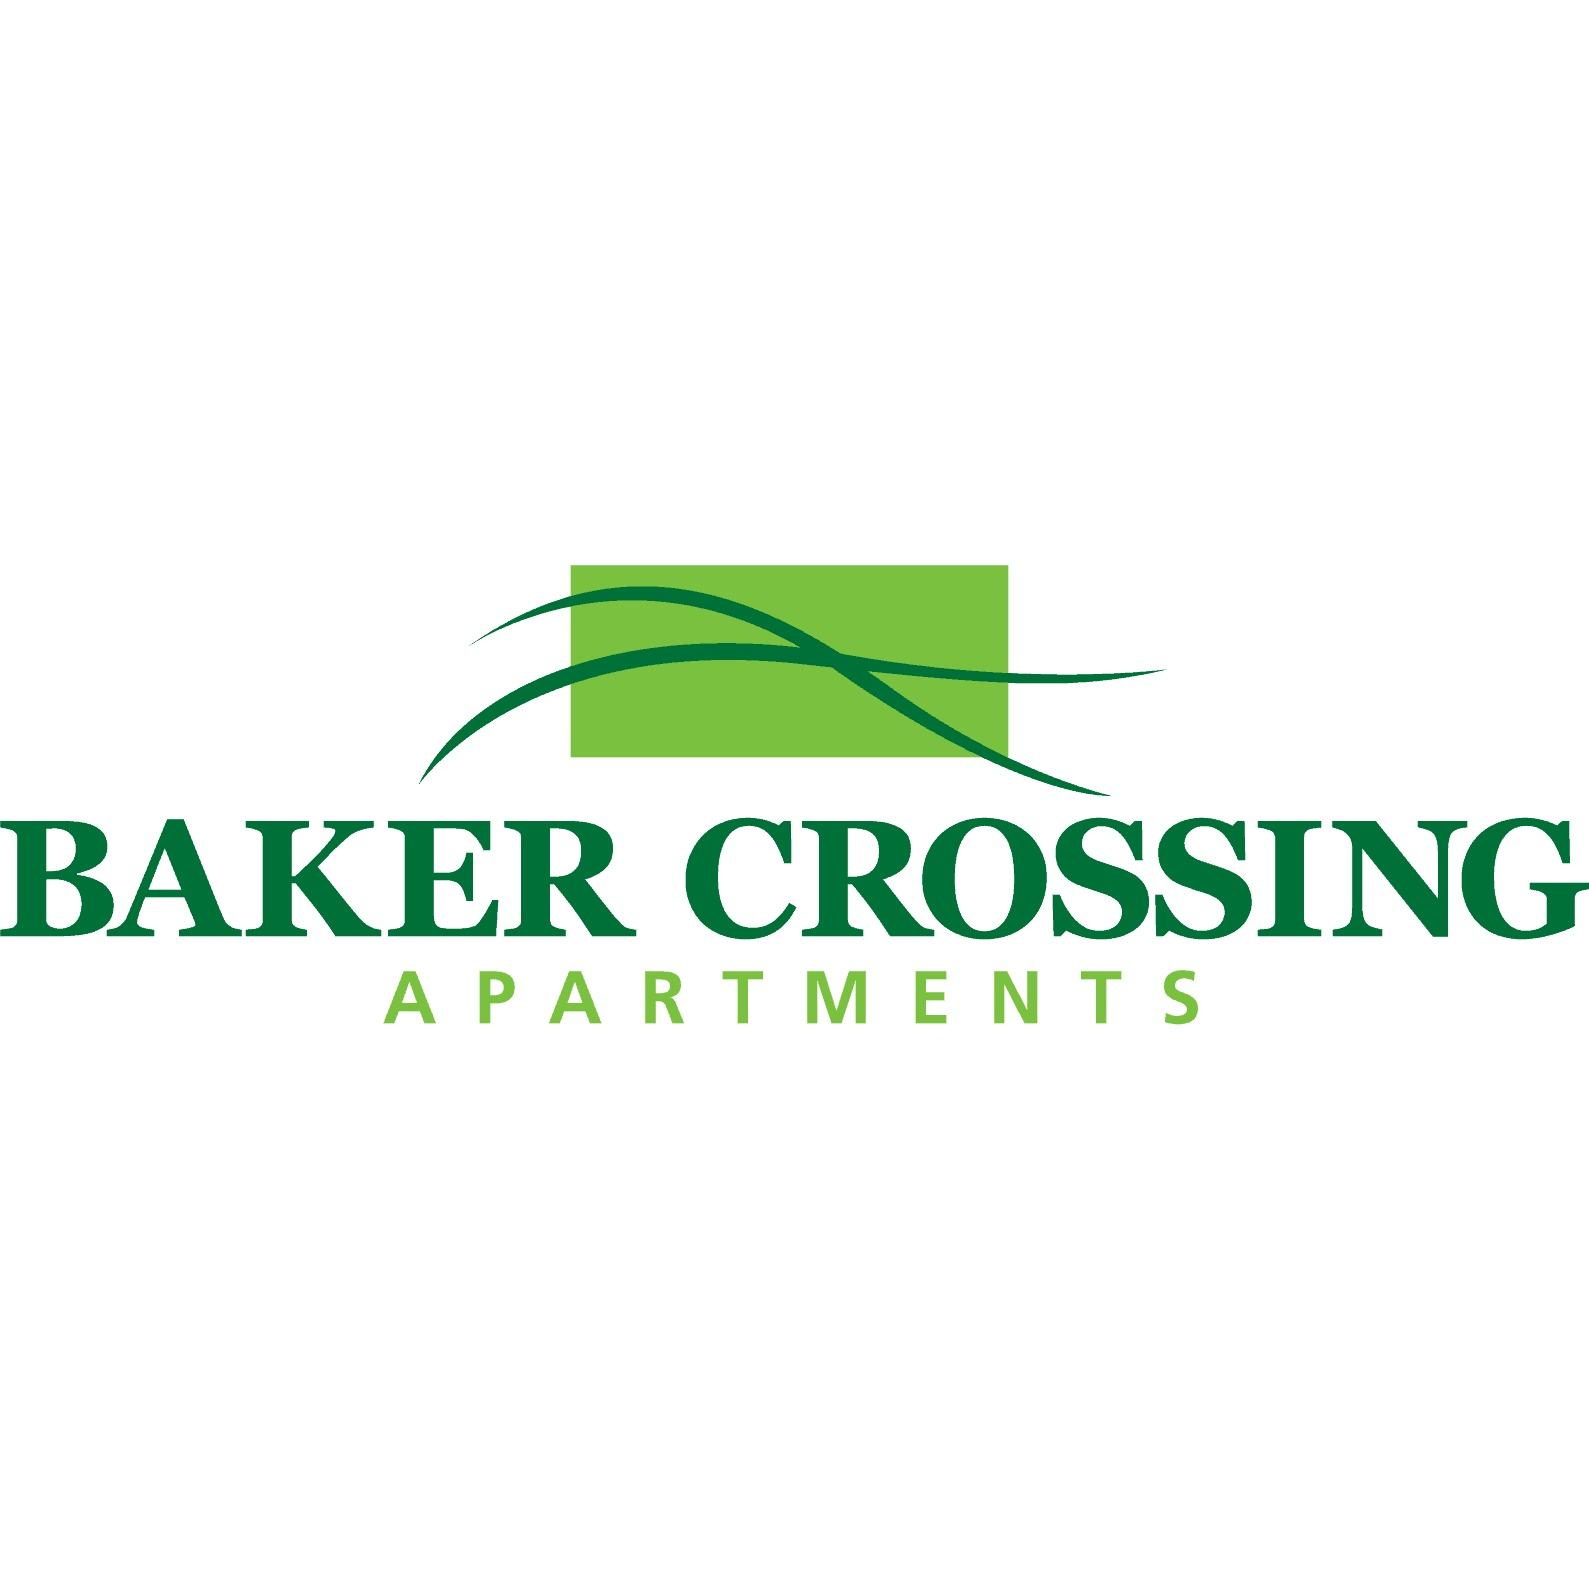 Baker Crossing Apartments image 5